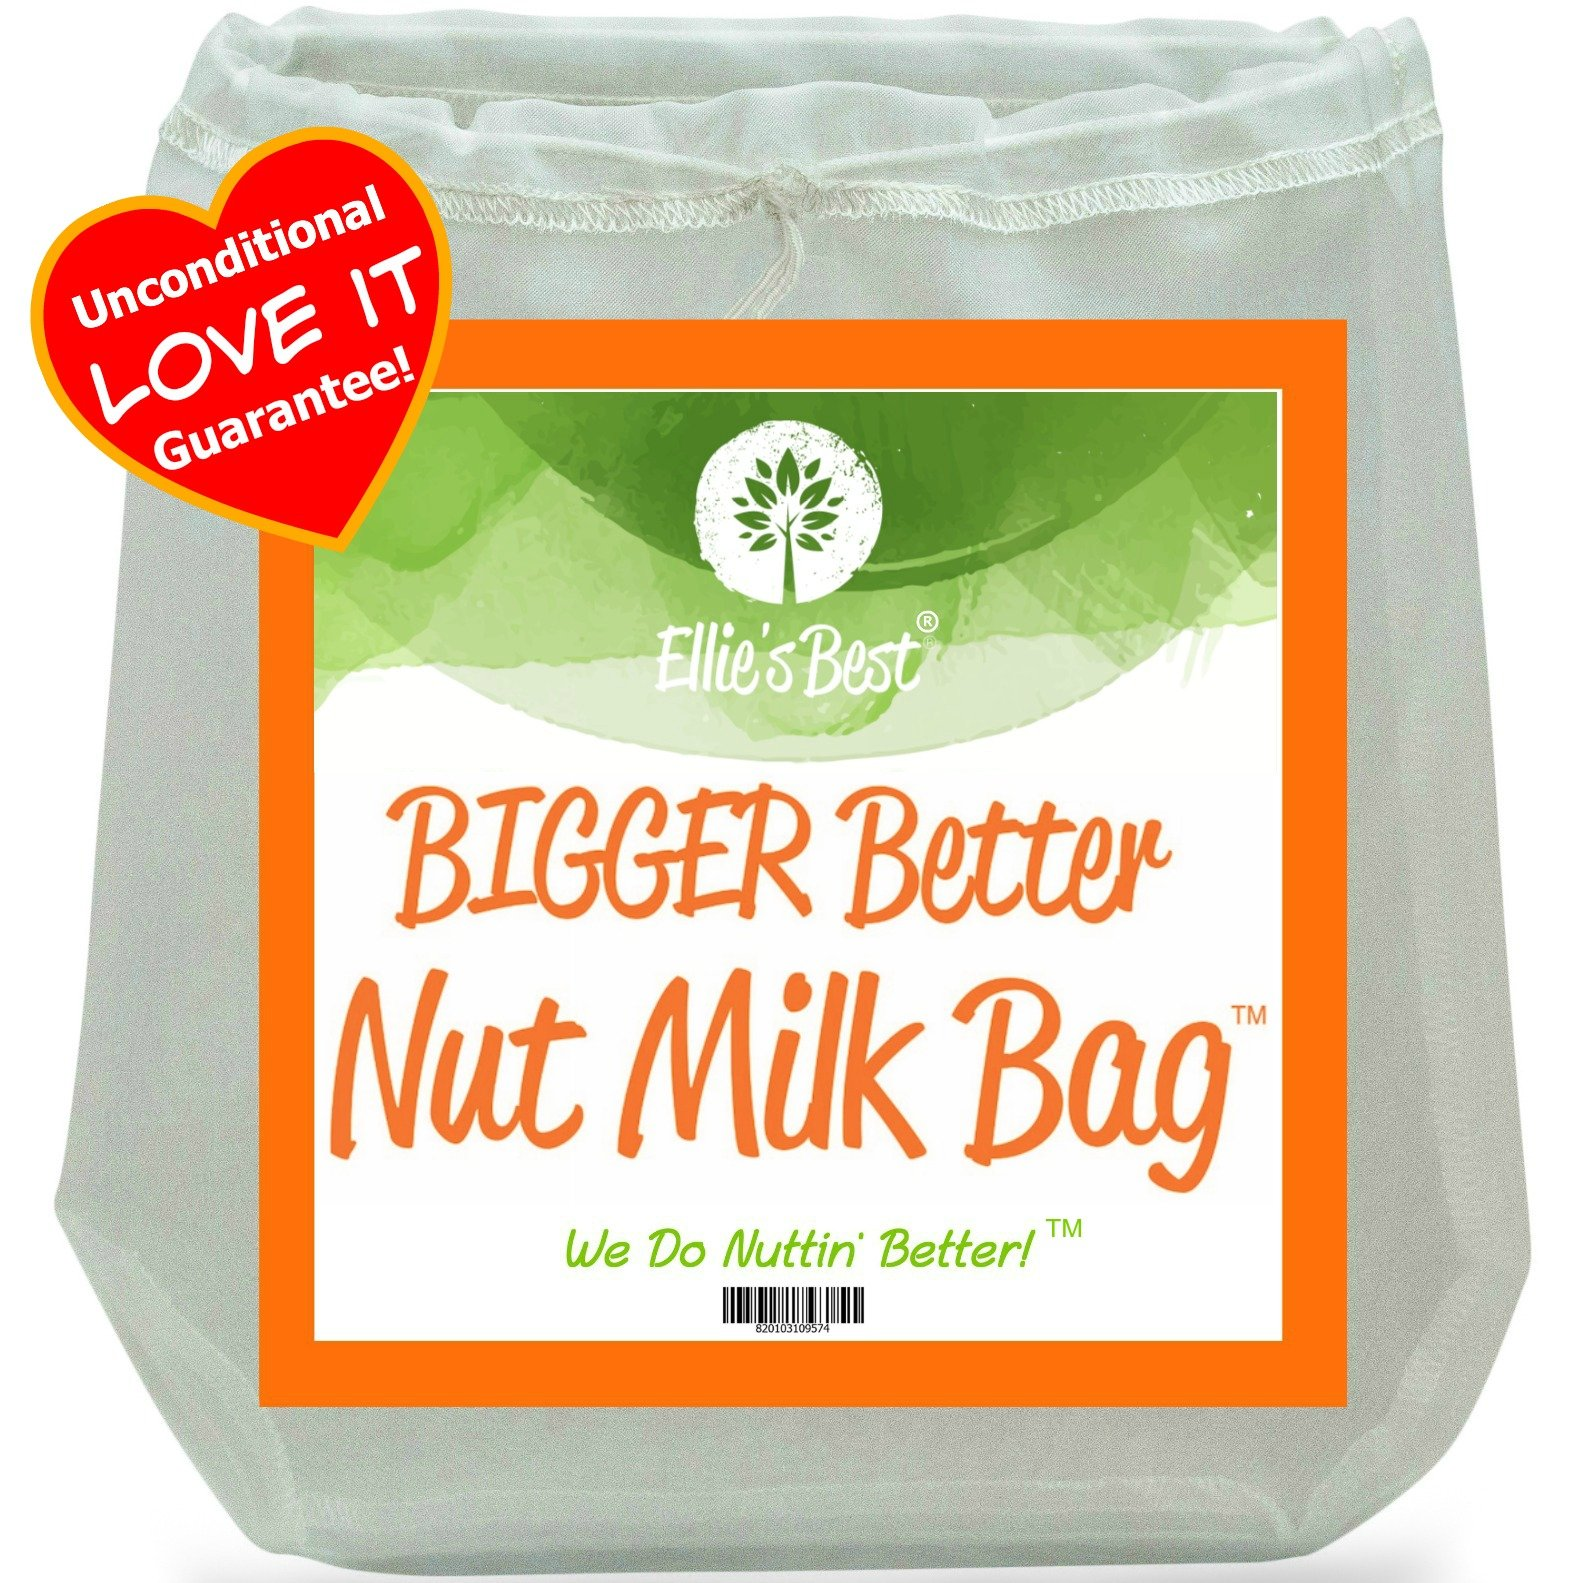 Pro Quality Nut Milk Bag - Big 12''X12'' Commercial Grade - Reusable Almond Milk Bag & All Purpose Food Strainer - Fine Mesh Nylon Cheesecloth & Cold Brew Coffee Filter - Free Recipes & Videos (1)